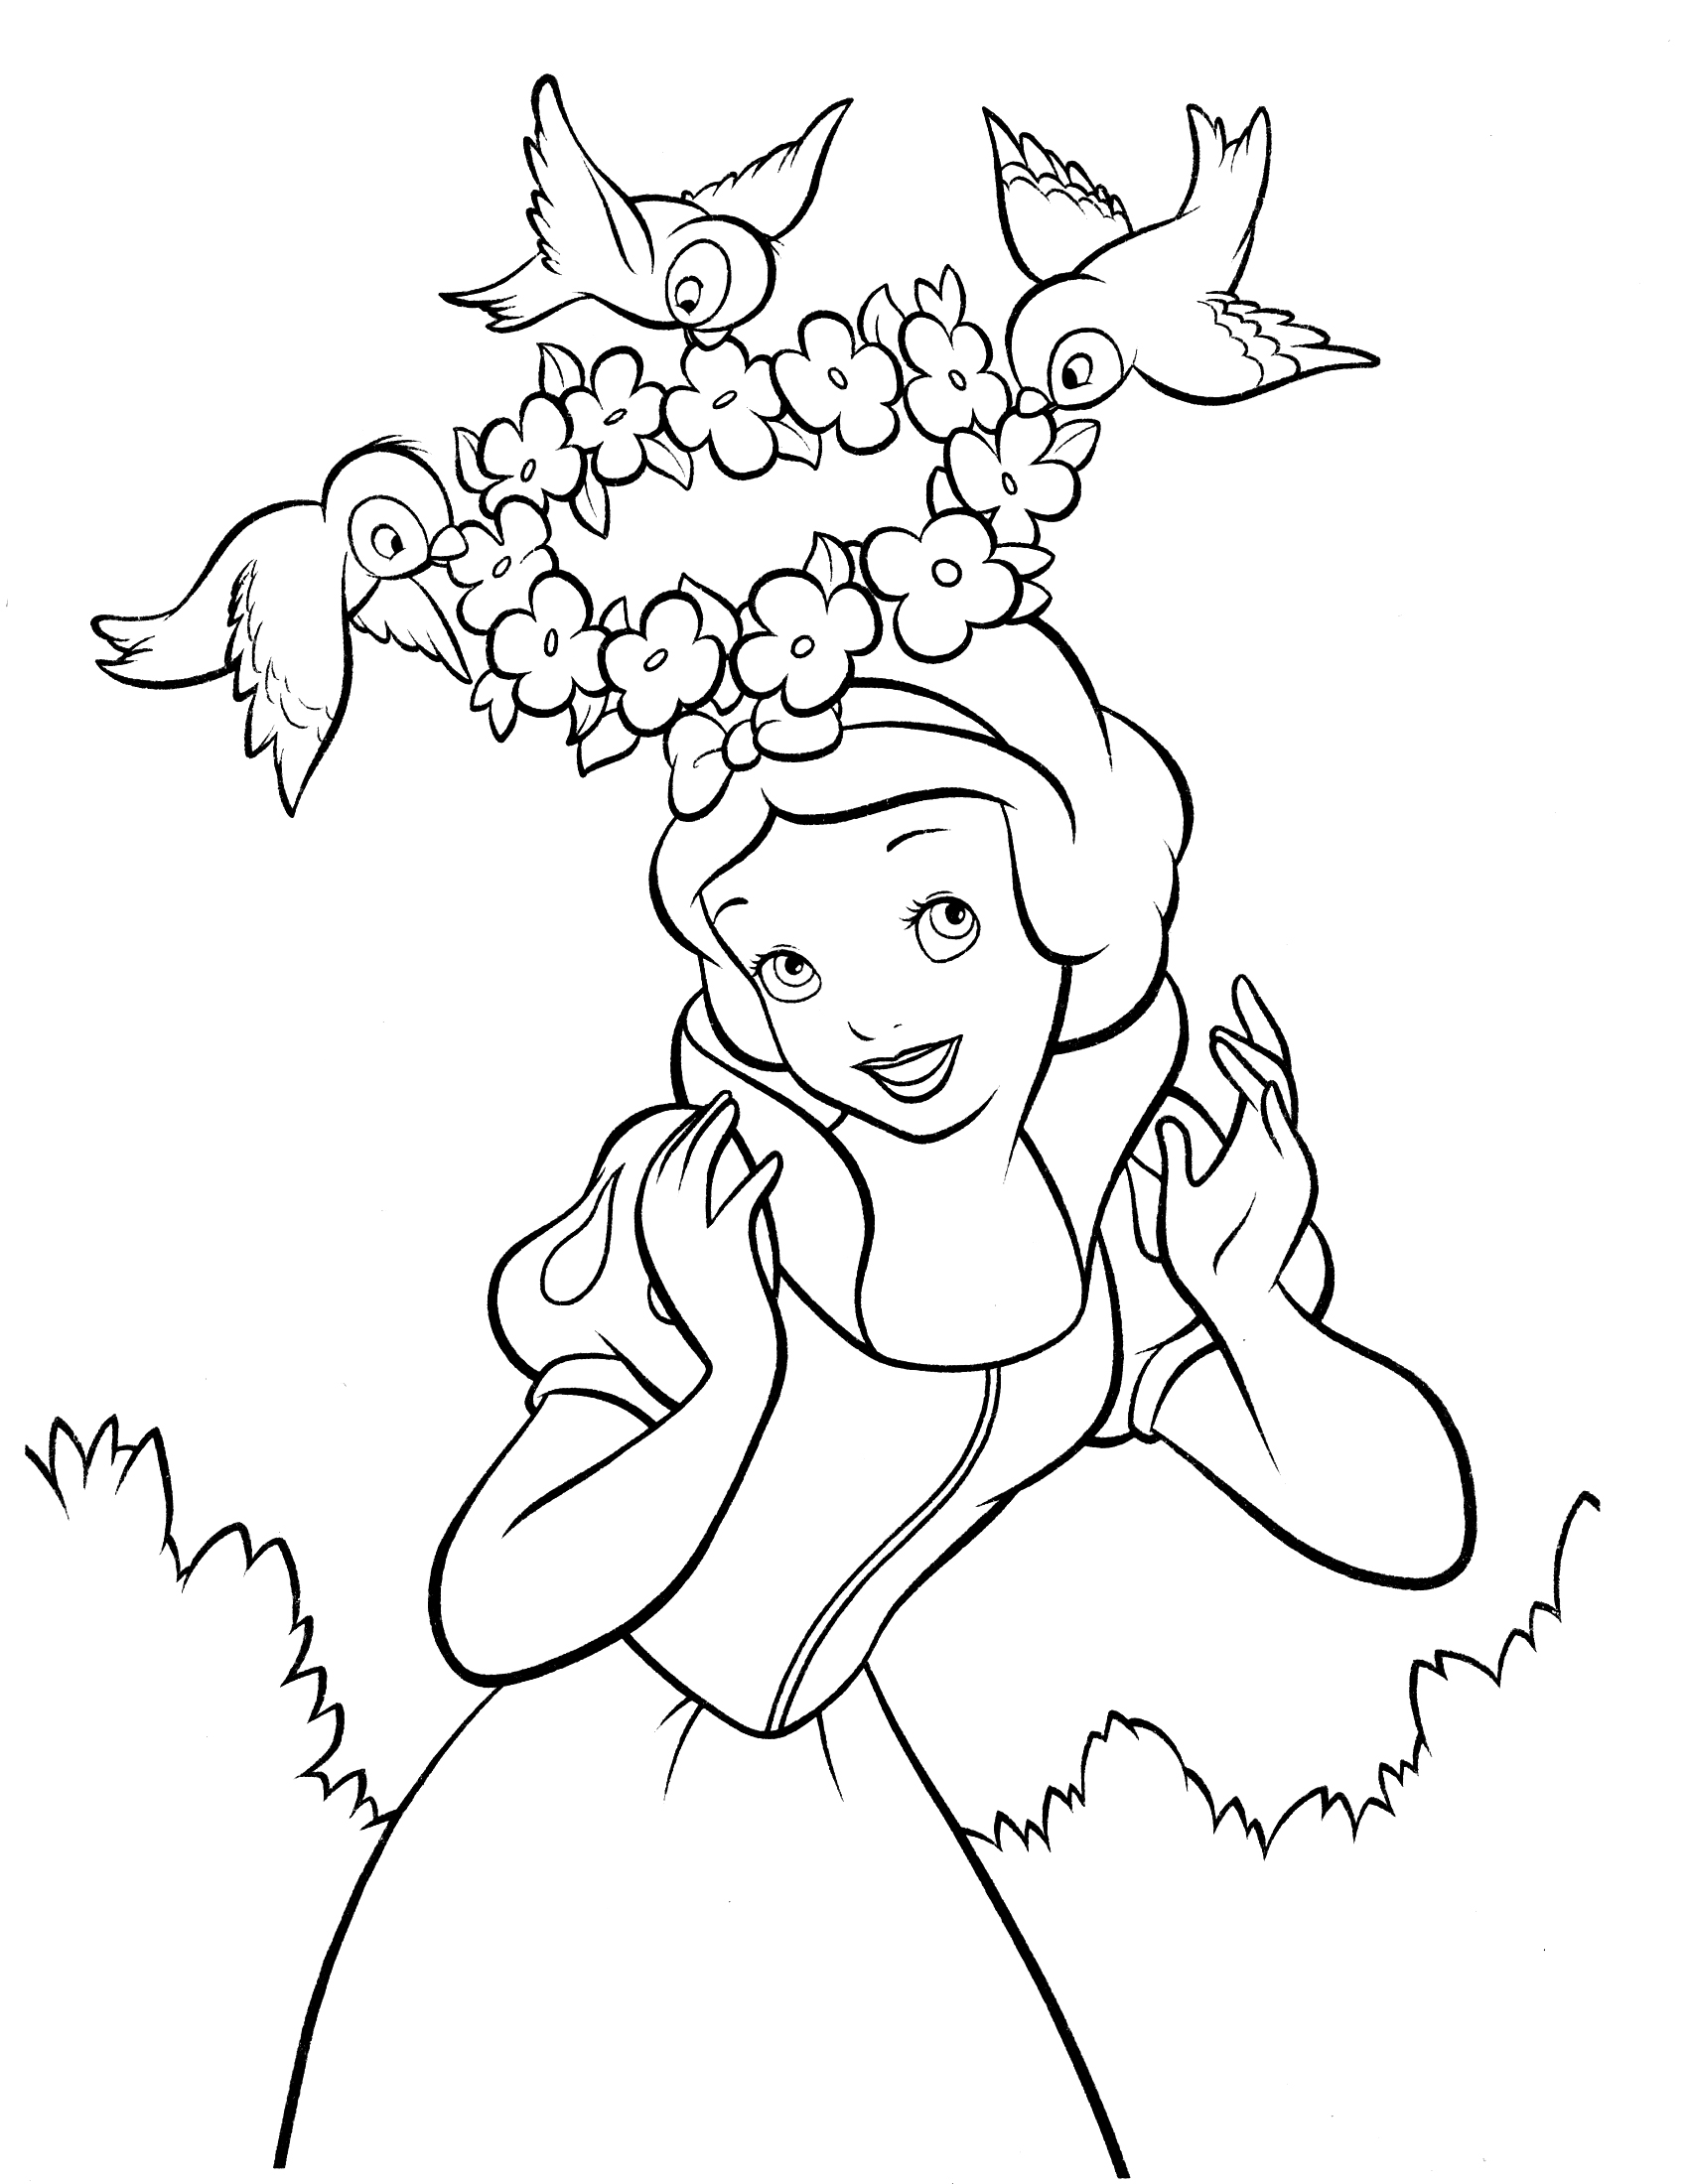 free snow white coloring pages snow white coloring pages minister coloring snow free white pages coloring